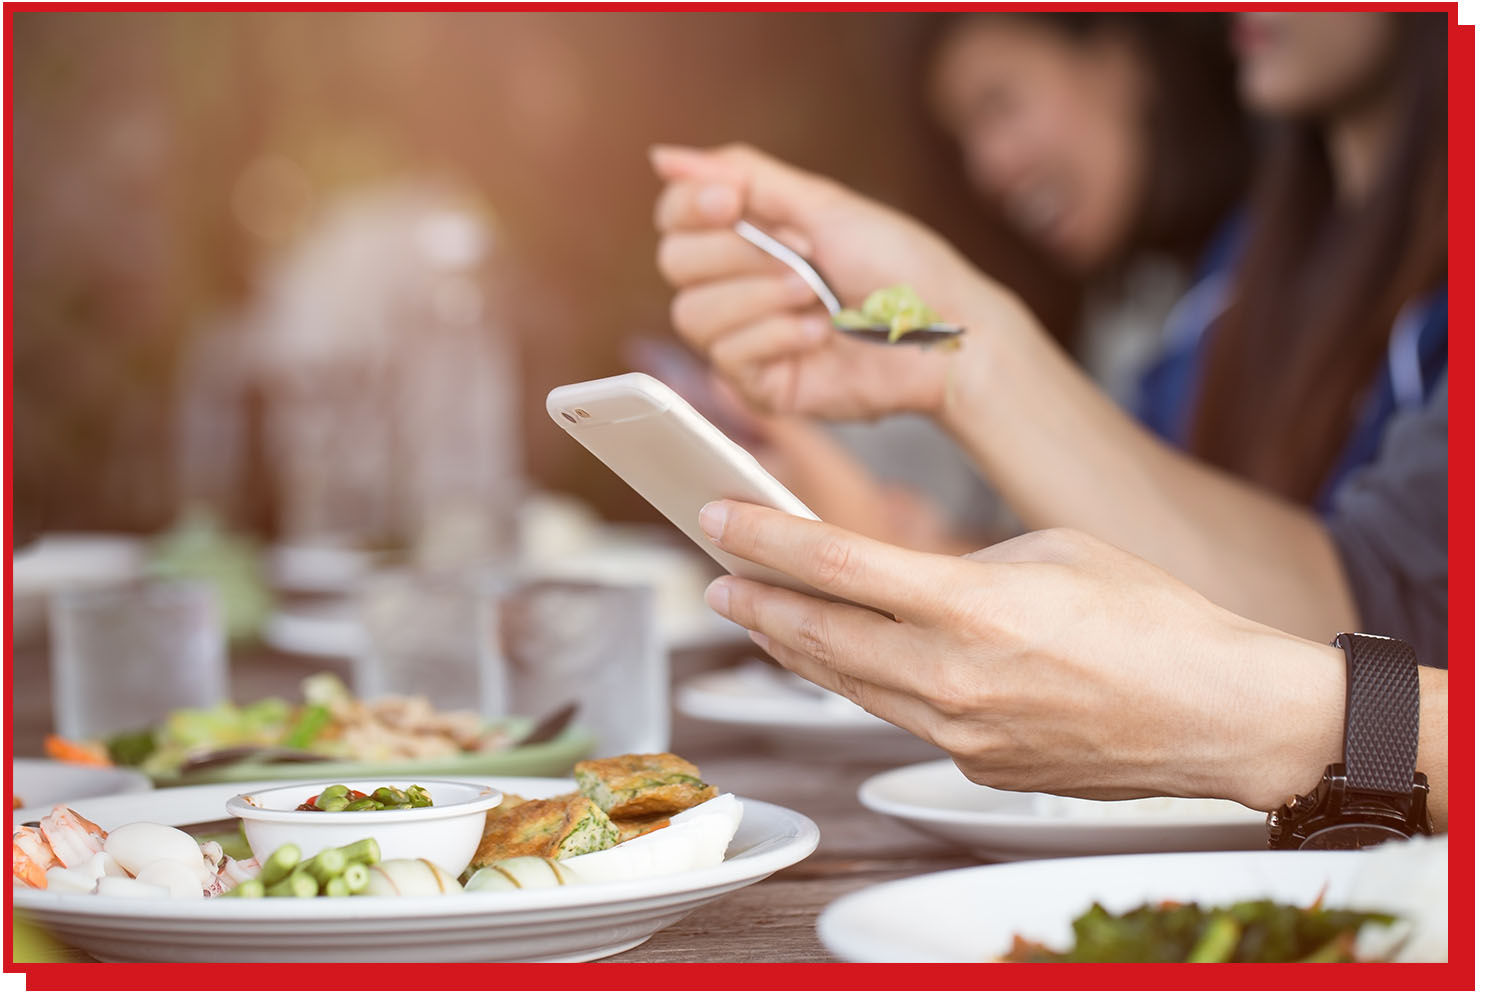 Man reading an article on his phone while sitting at the dinner table.